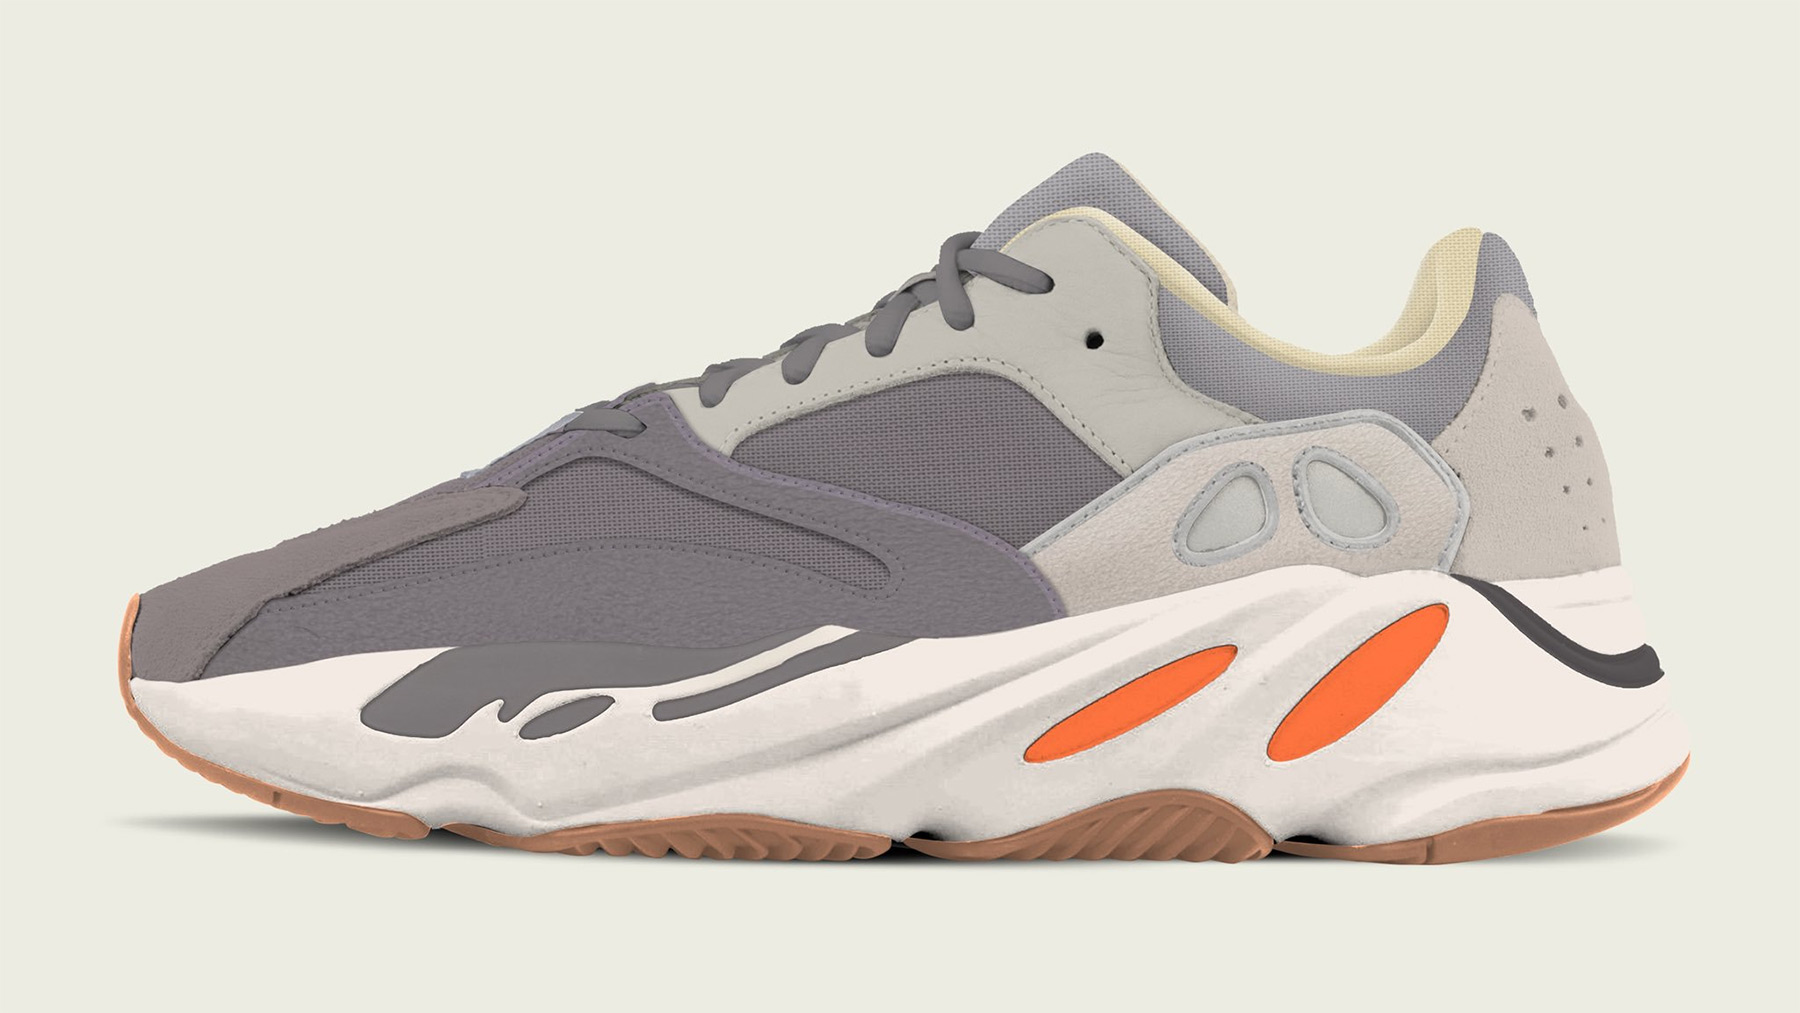 adidas YEEZY Boost 700 Magnet 1